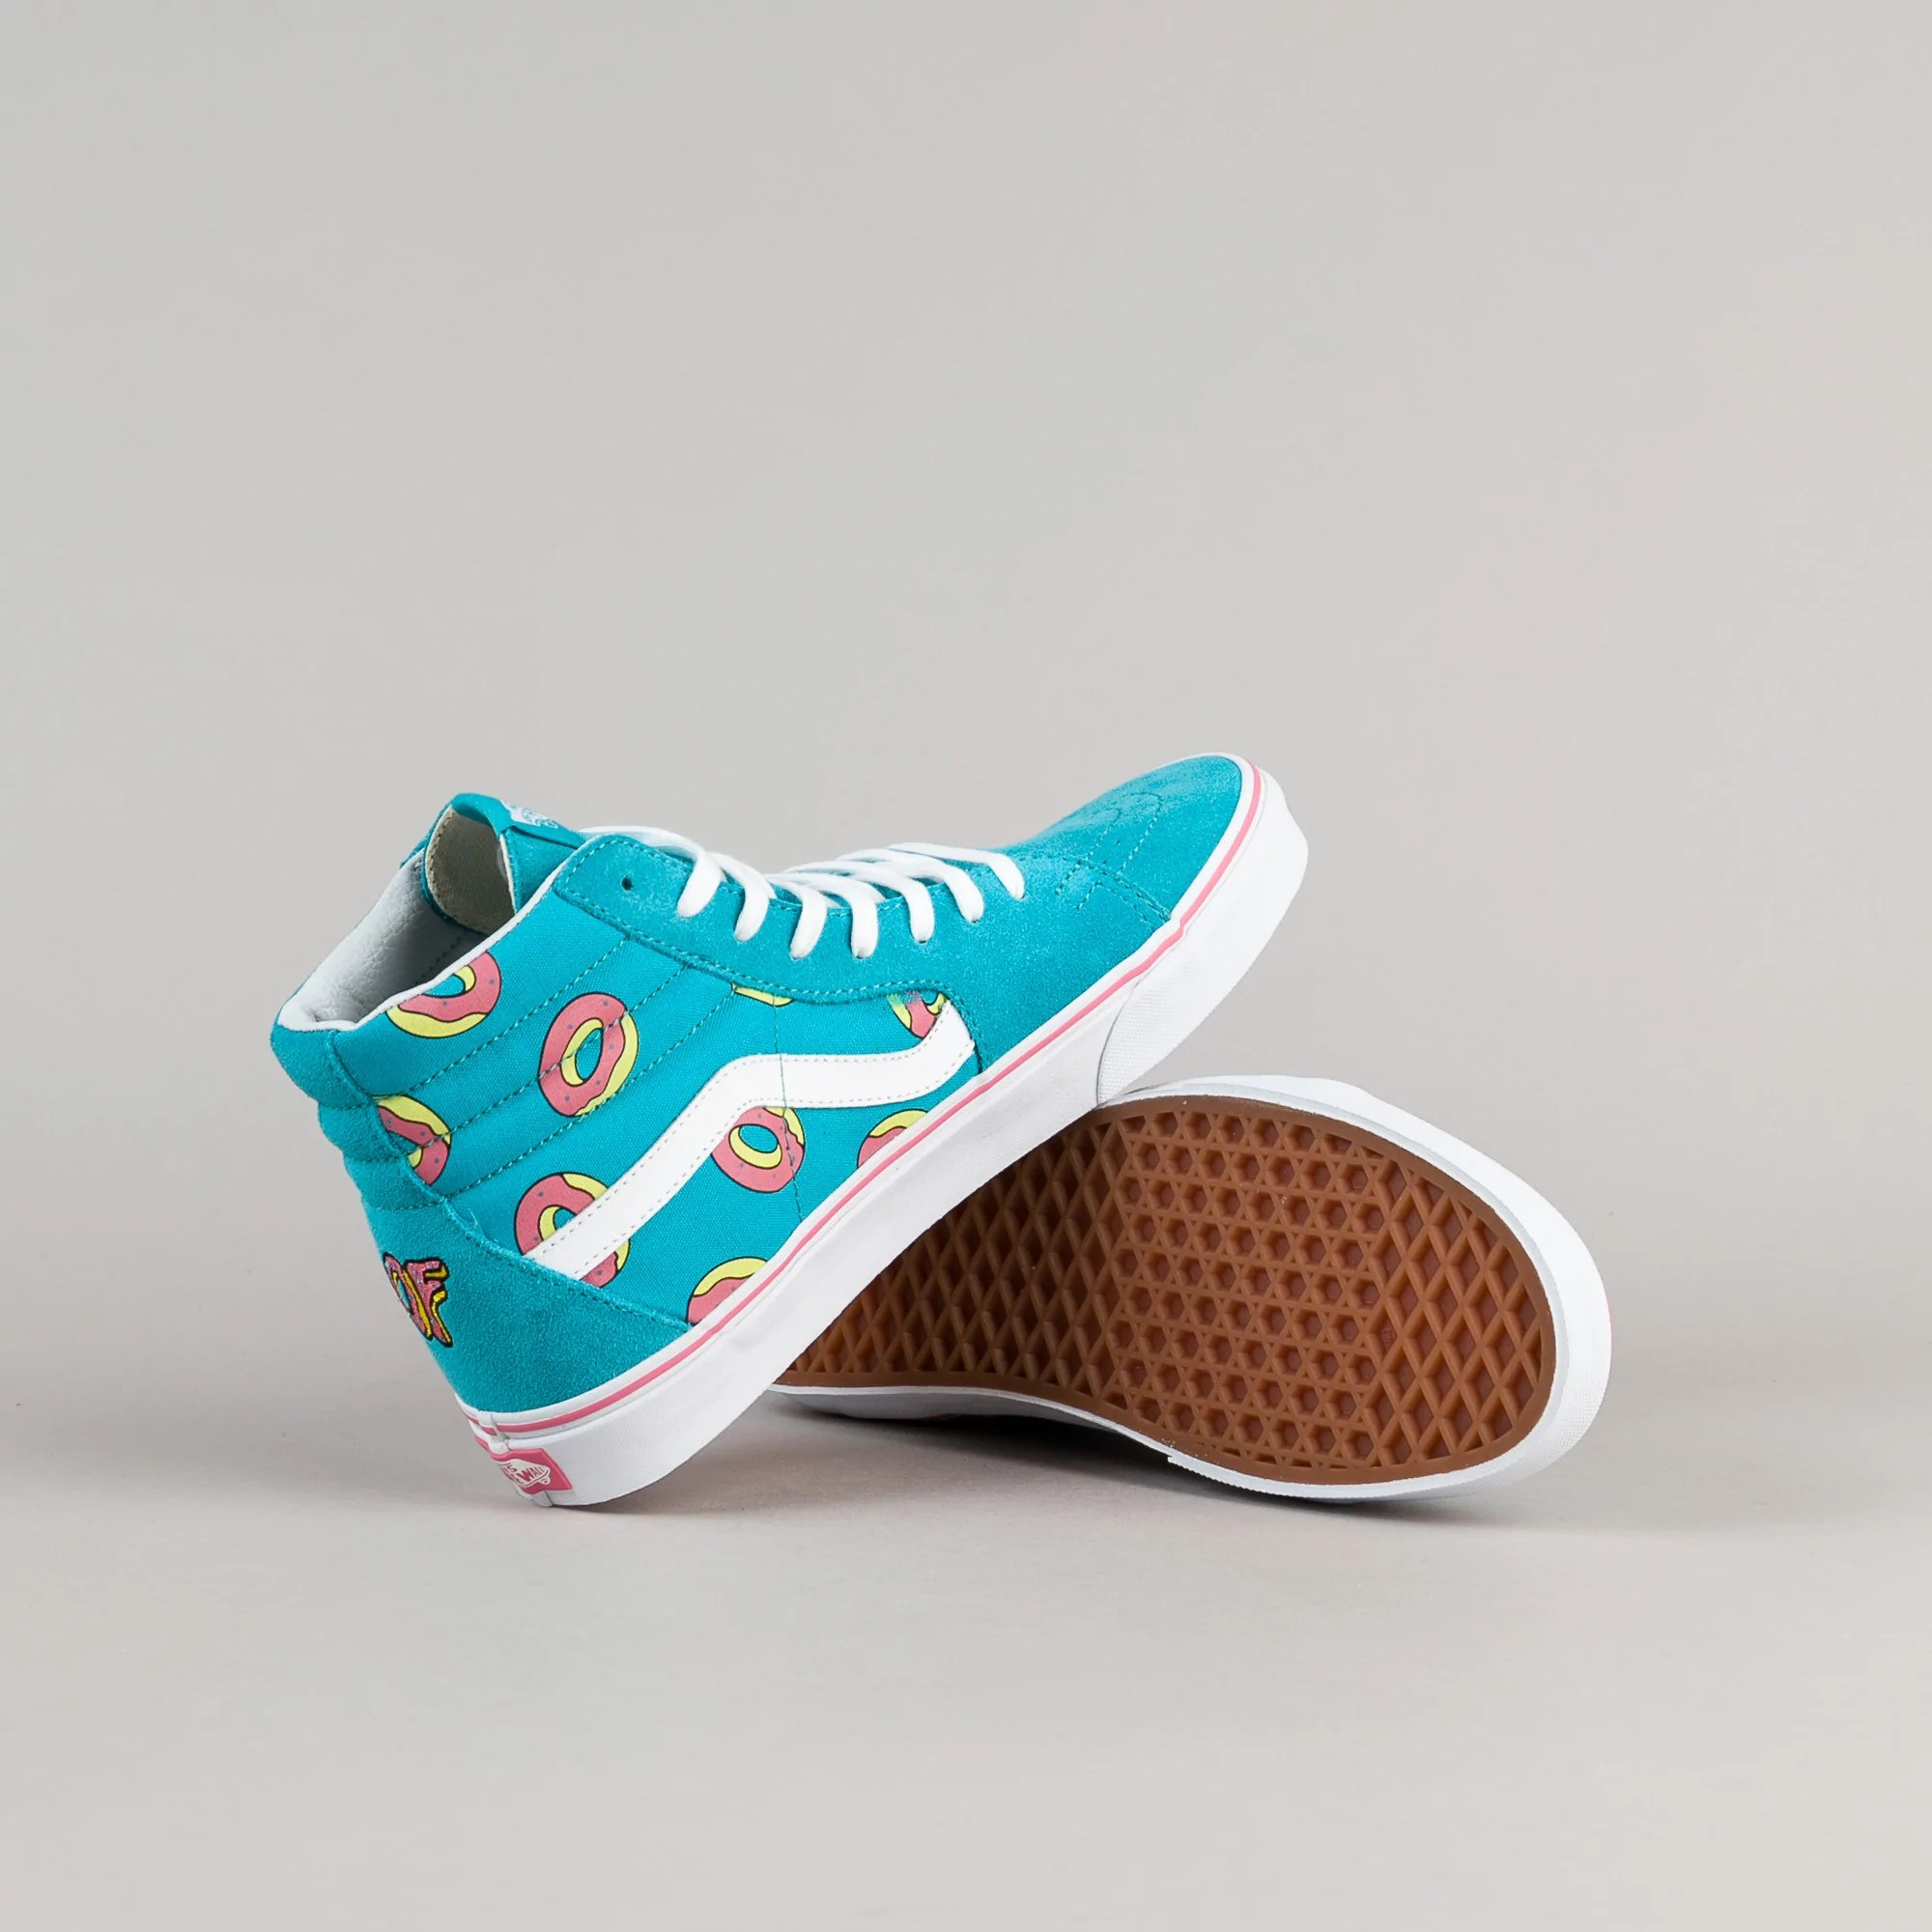 b0743b148275 20+ Donut Vans High Pictures and Ideas on Meta Networks. donut vans. Vans x  Odd Future ...